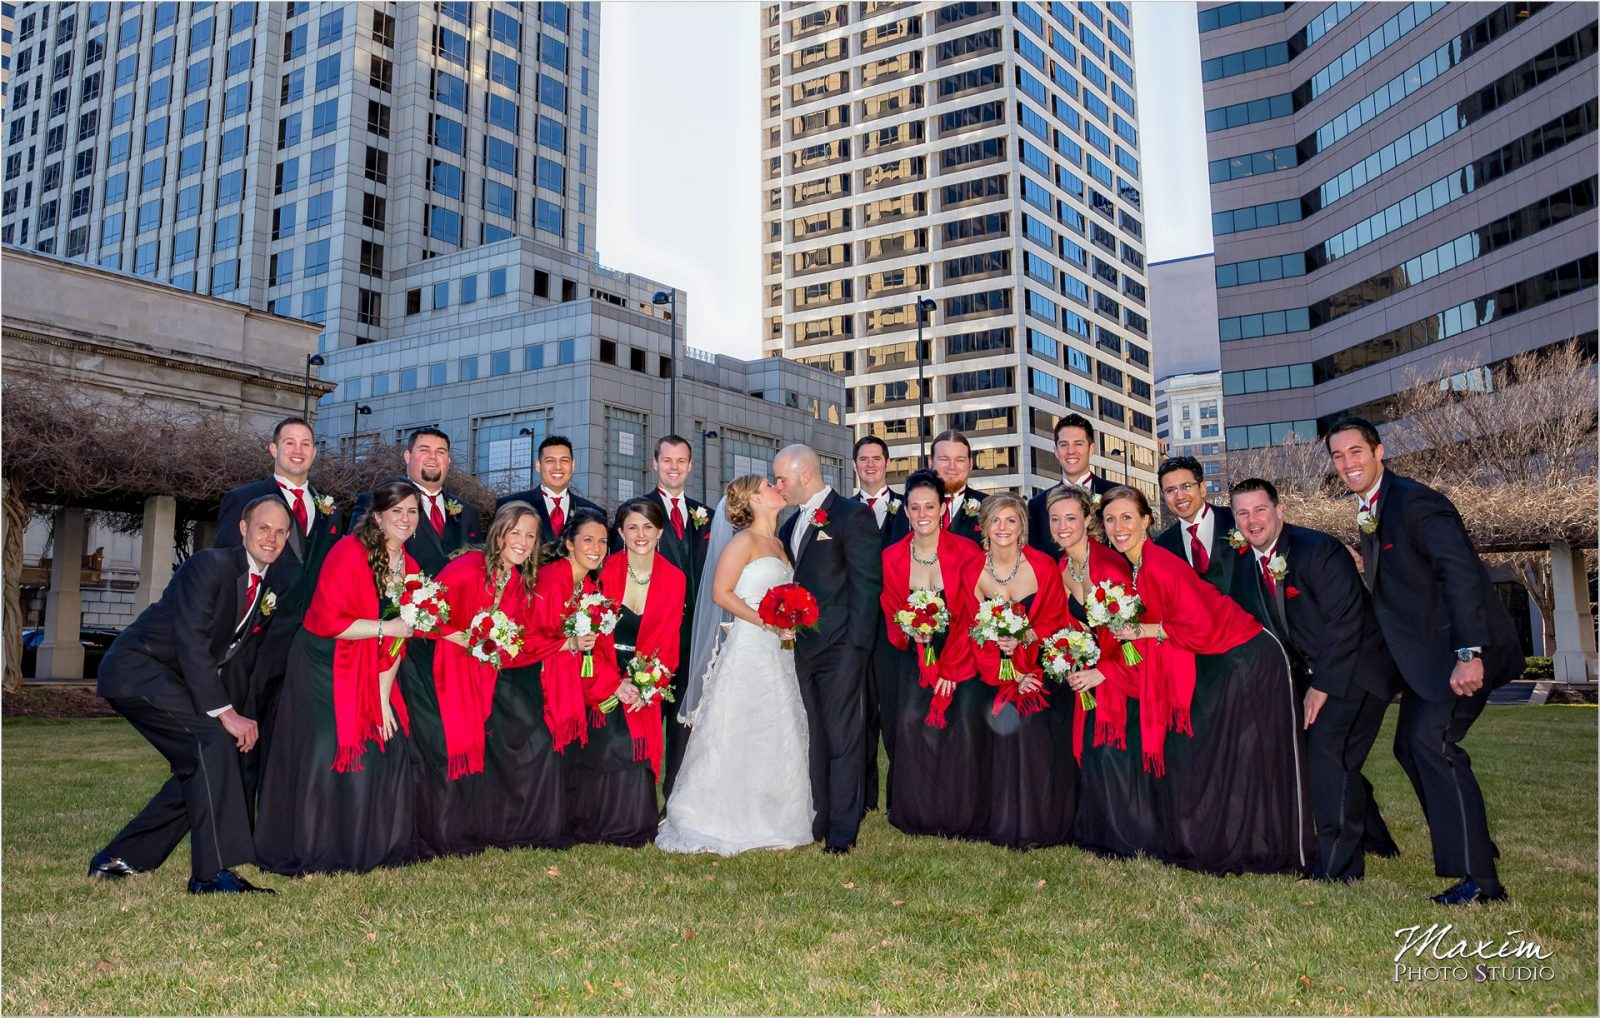 P&G Gardens Cincinnati Bridal Party